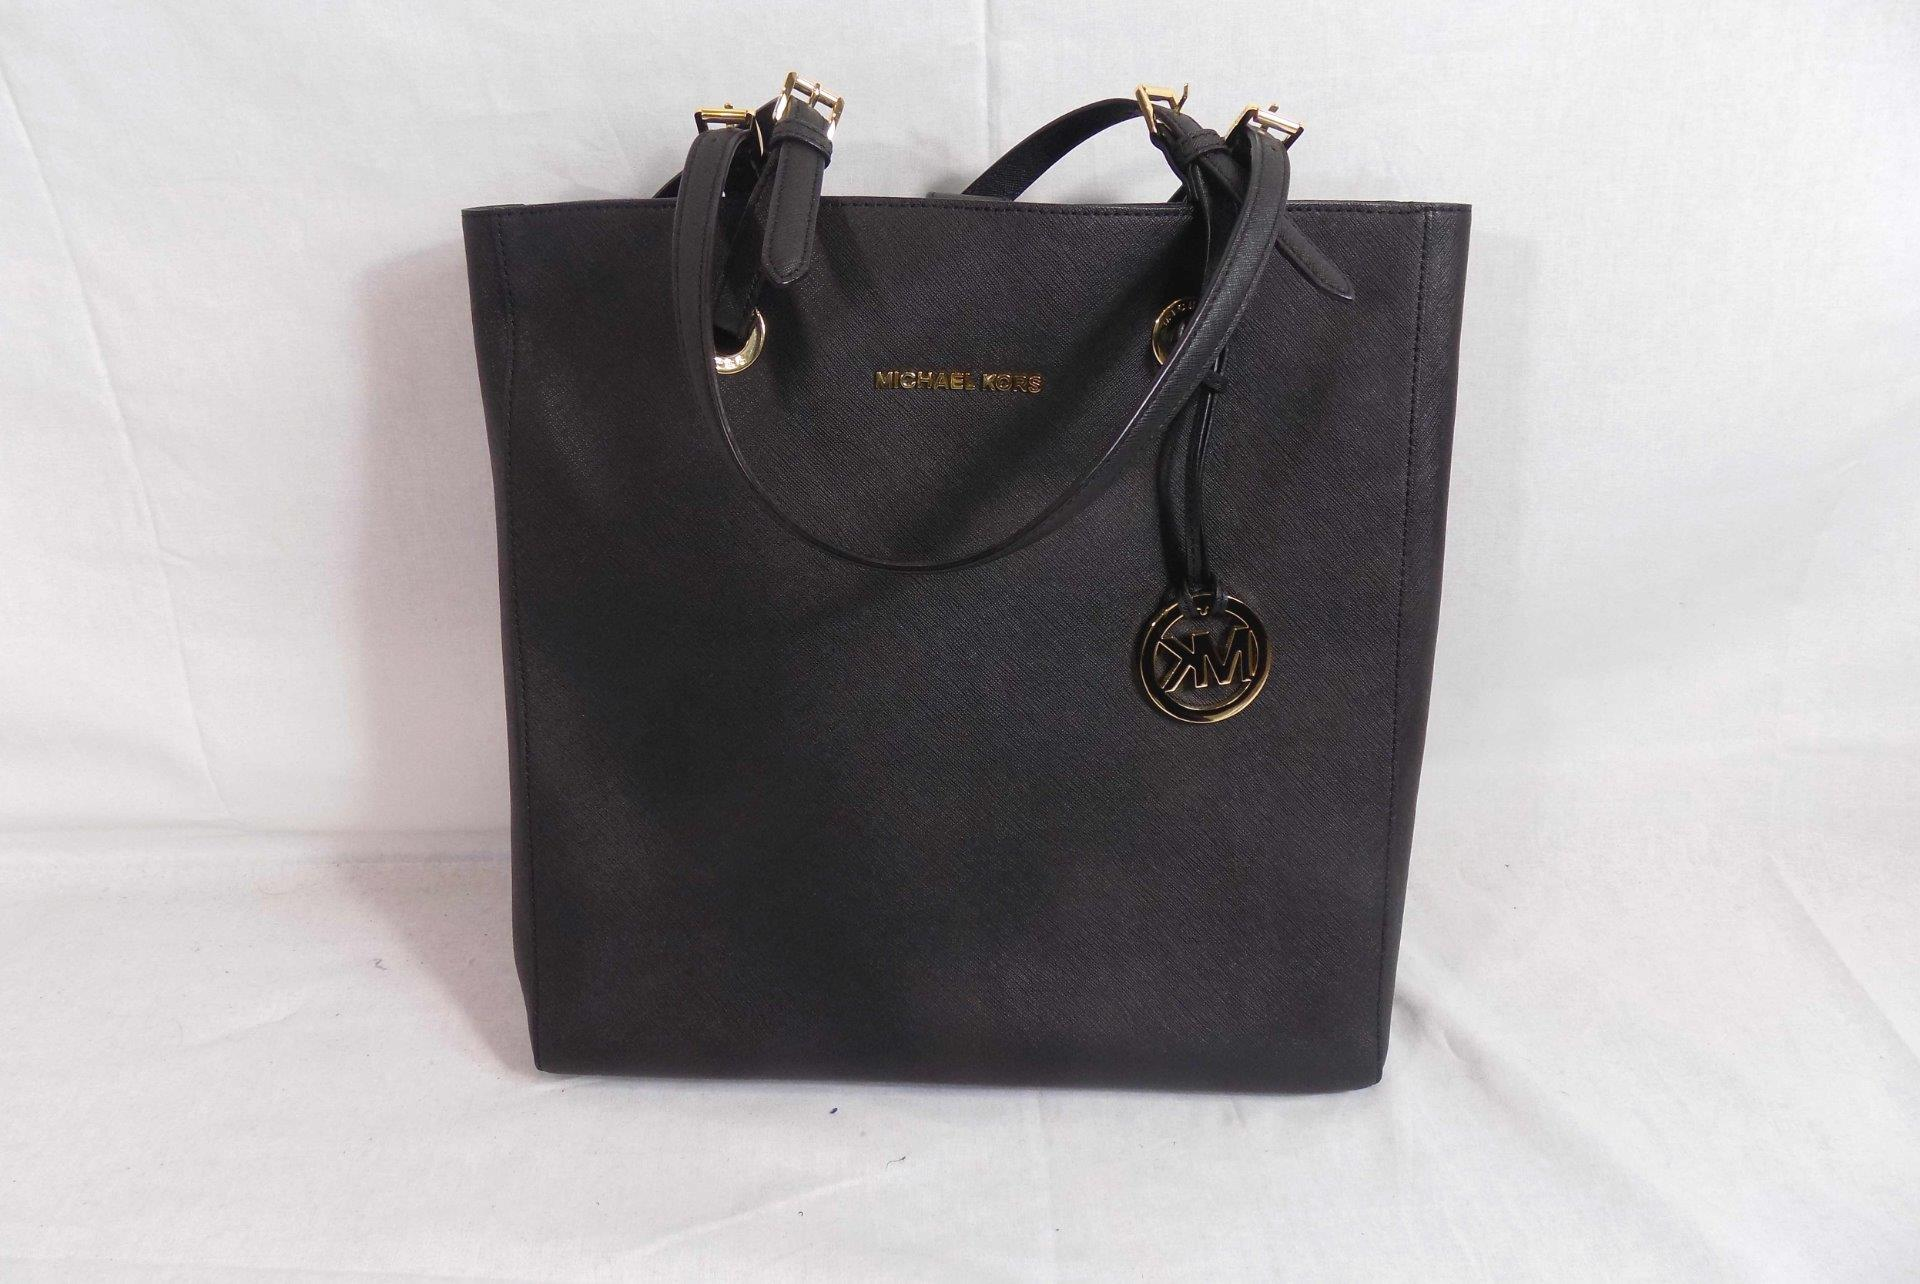 efa383bf9a2d Michael Kors Handbag Black Leather Double Handle Large Tote Limited ...